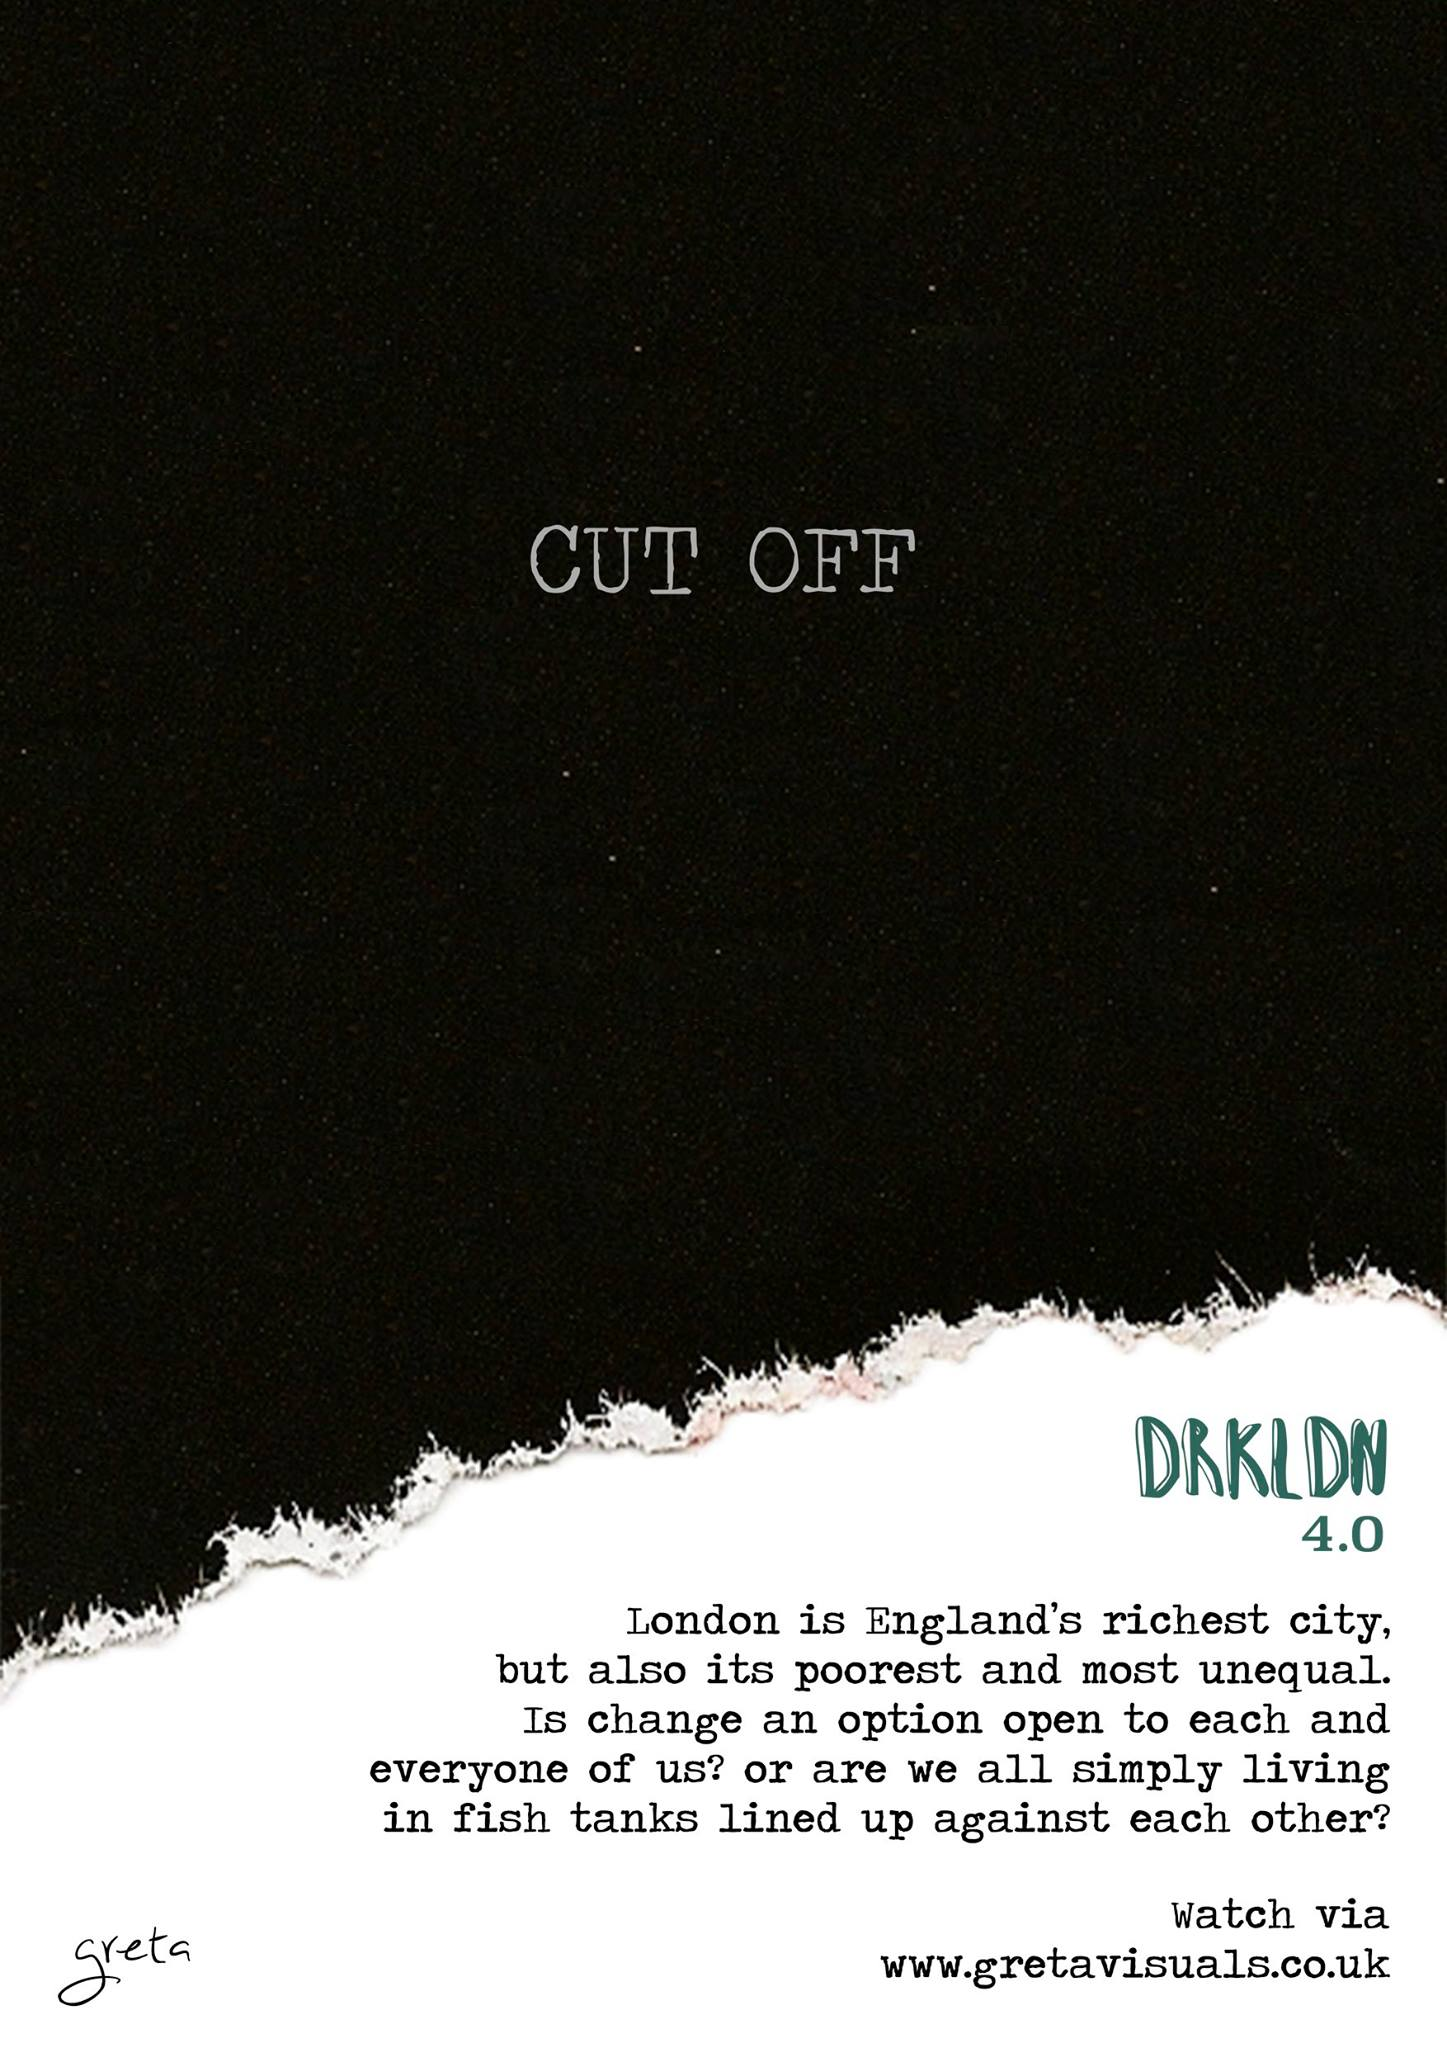 'Cut Off' Digital Poster (DRKLDN)    The 3rd DRKLDN instalment has now returned with another insightful piece. Above is the digital poster supporting the campaign series. (Conscious Visual)